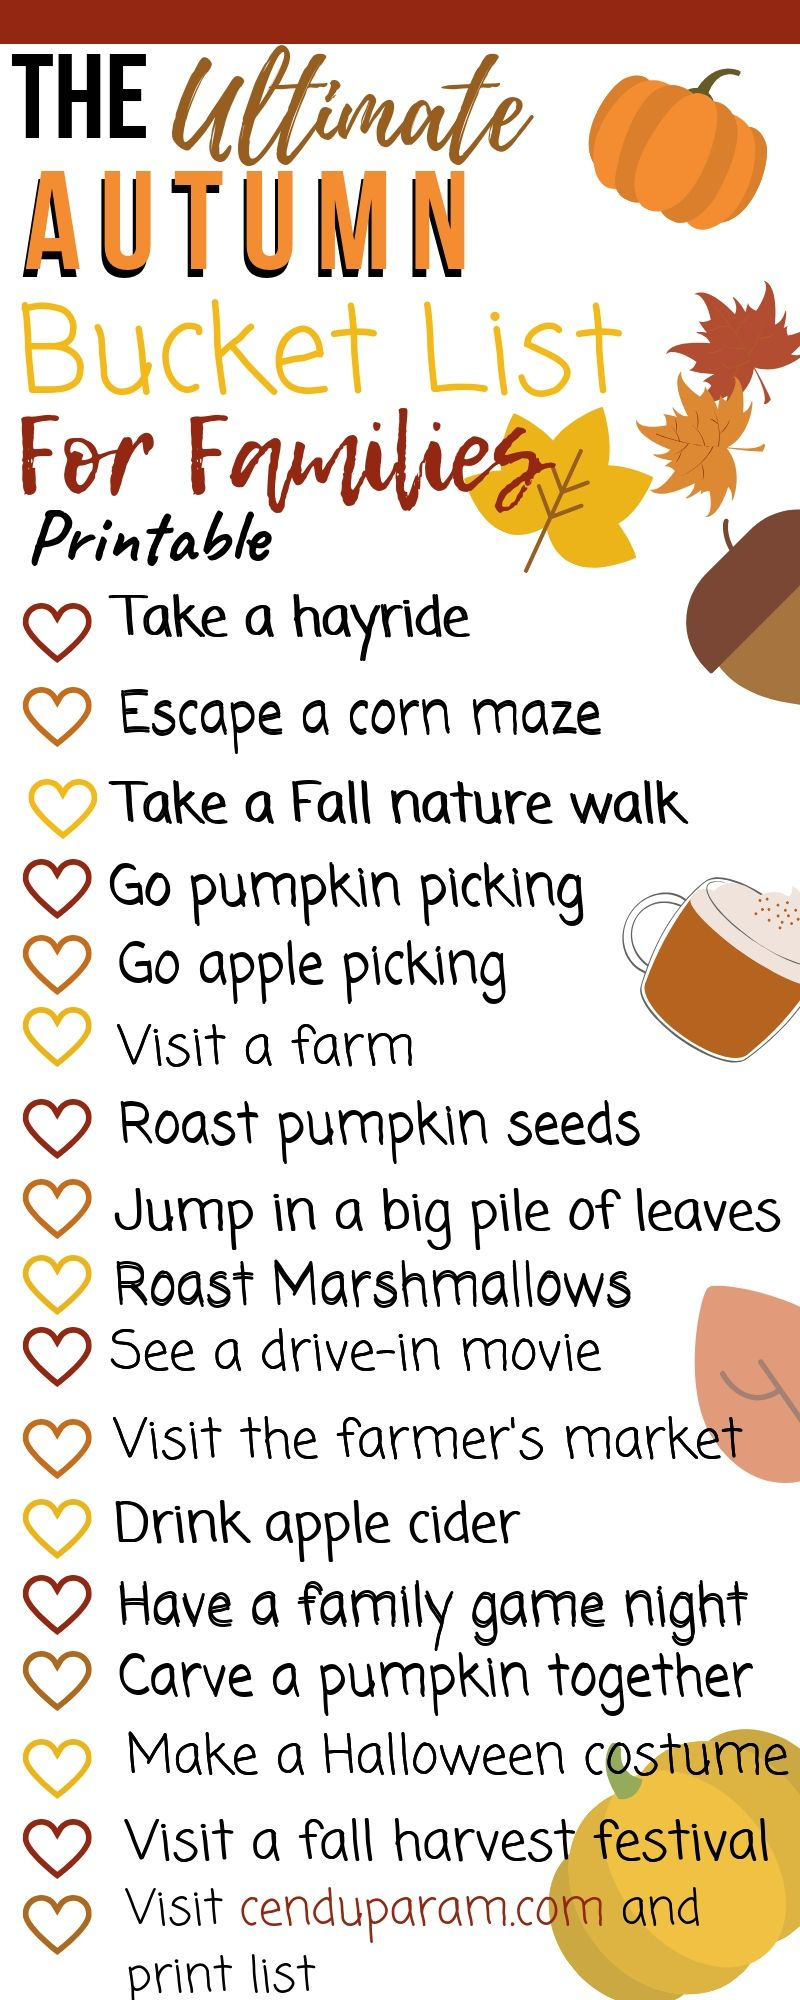 The ultimate autumn bucket list for the whole family like pumpkin picking, roasting pumpkin sees and watching leaves change color.